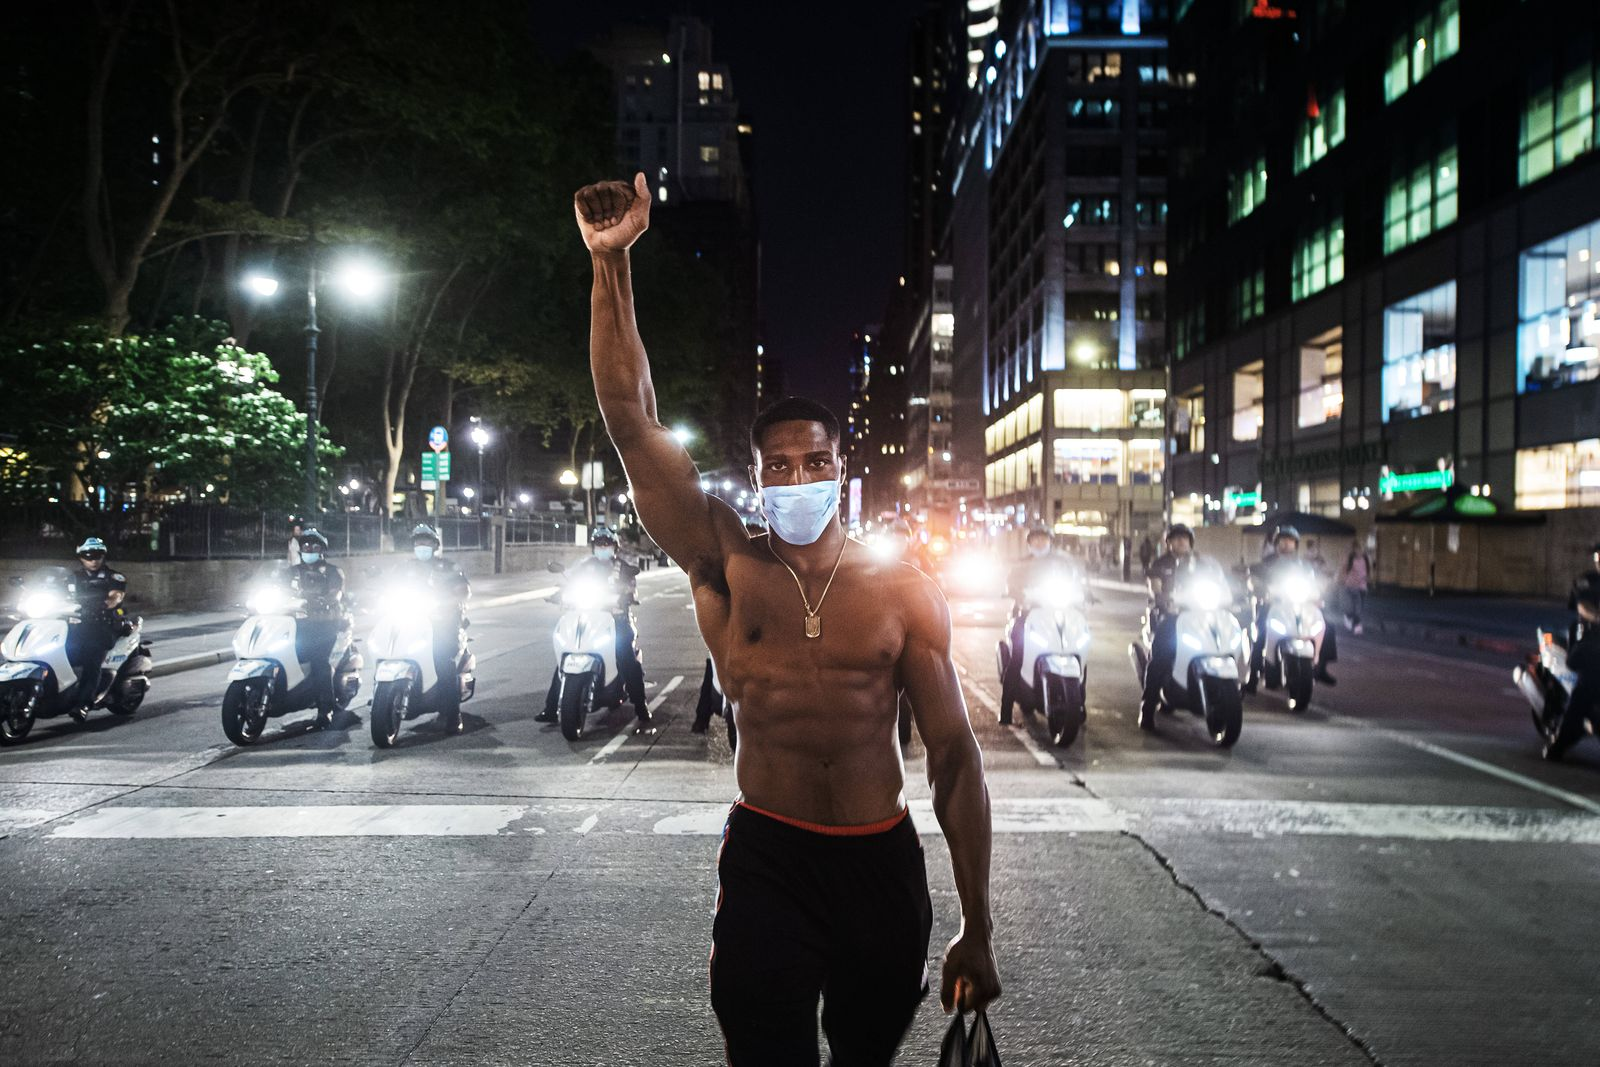 200604 Demonstrator Jakarri Vanderbilt from Louisiana walks with a clenched fist in front of police during a protest ove